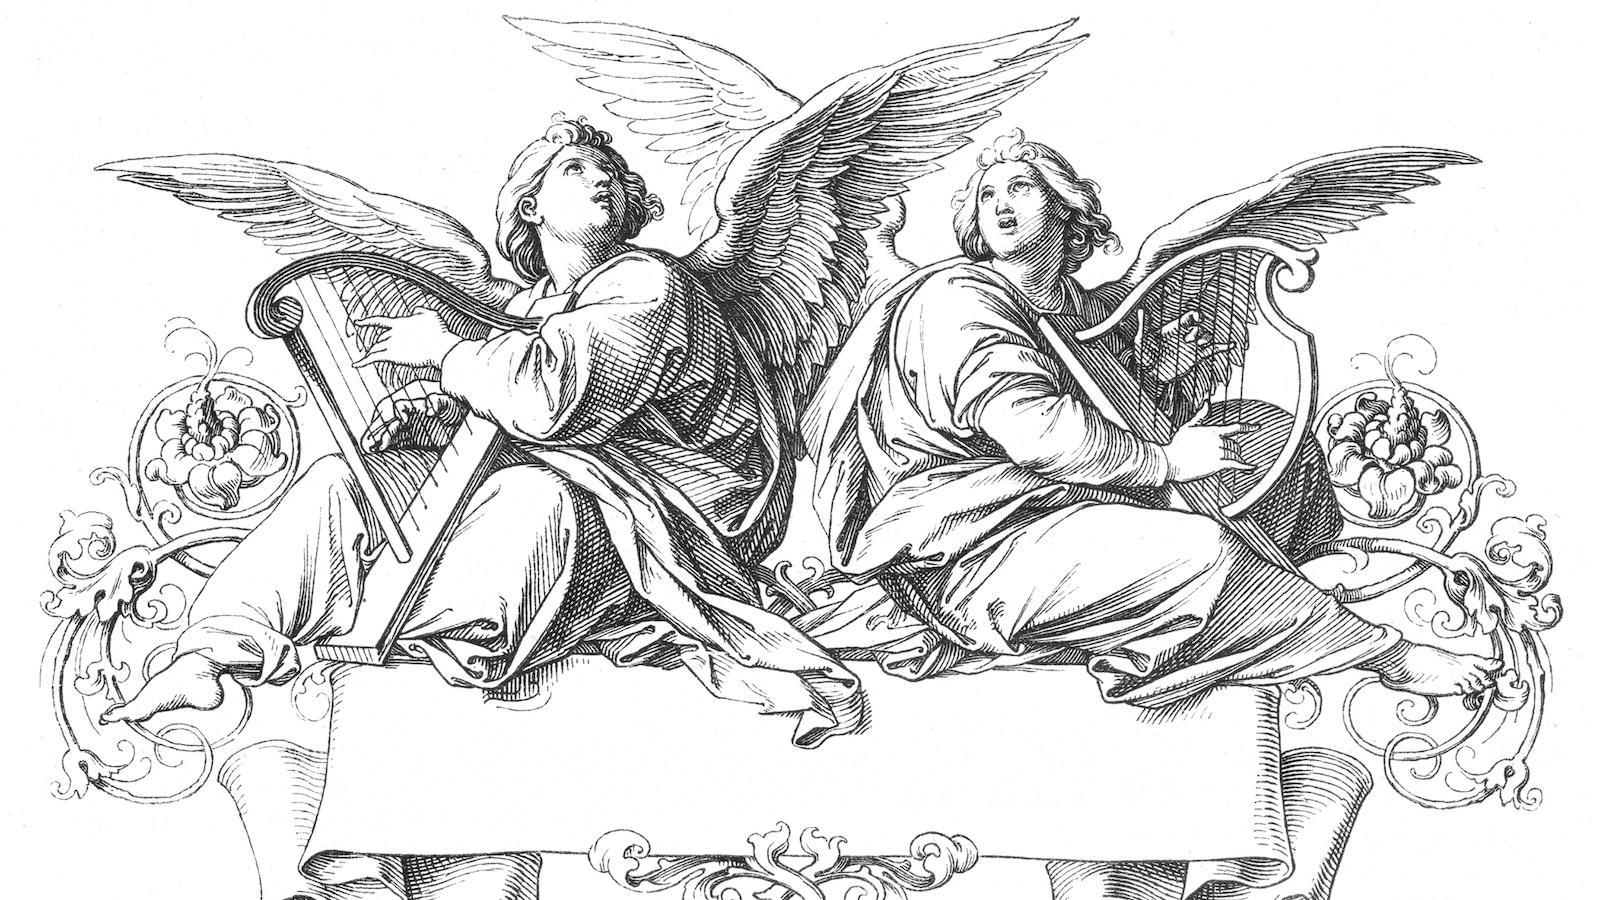 Do Jews Believe in Angels?